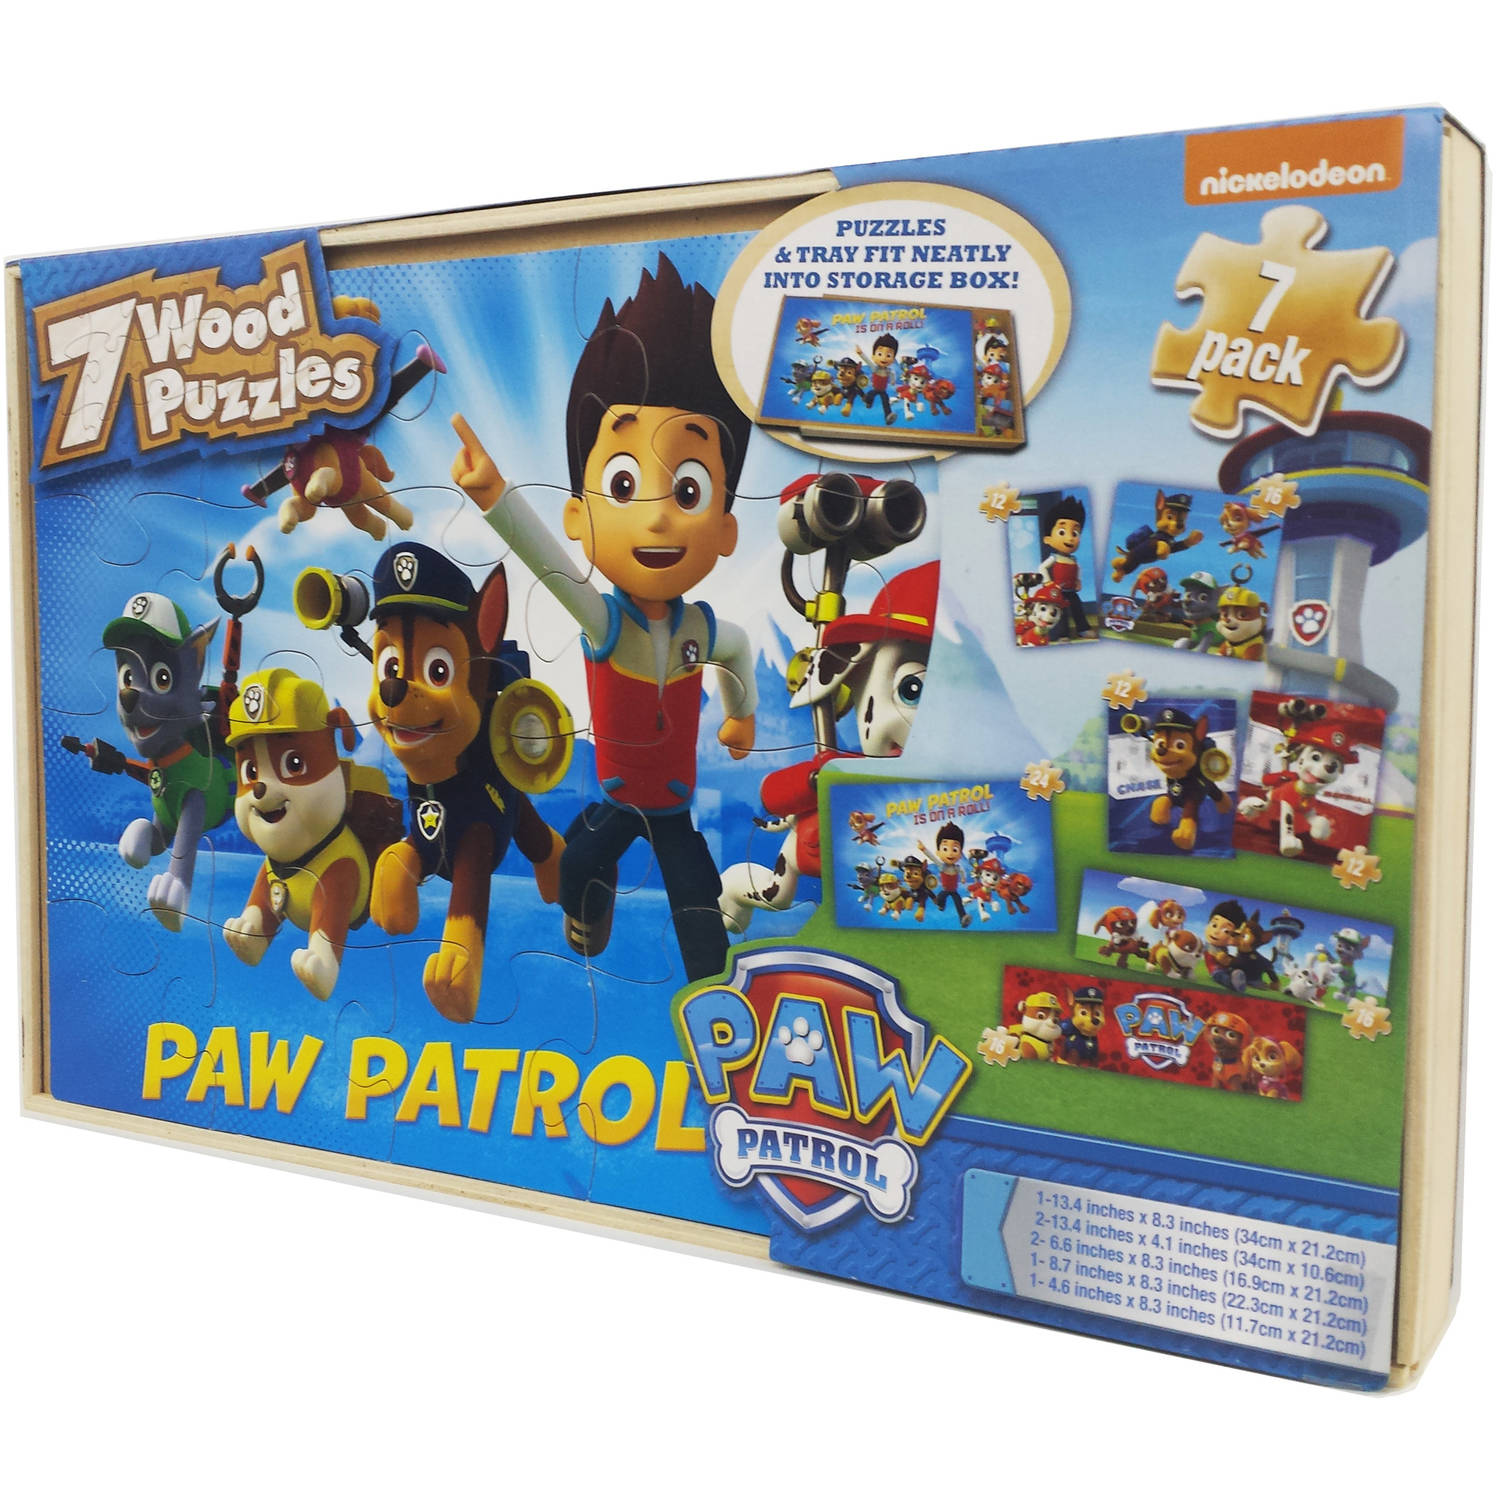 Nickelodeon Paw Patrol 7 Wood Jigsaw Puzzles in Wood Storage Box by Cardinal Games